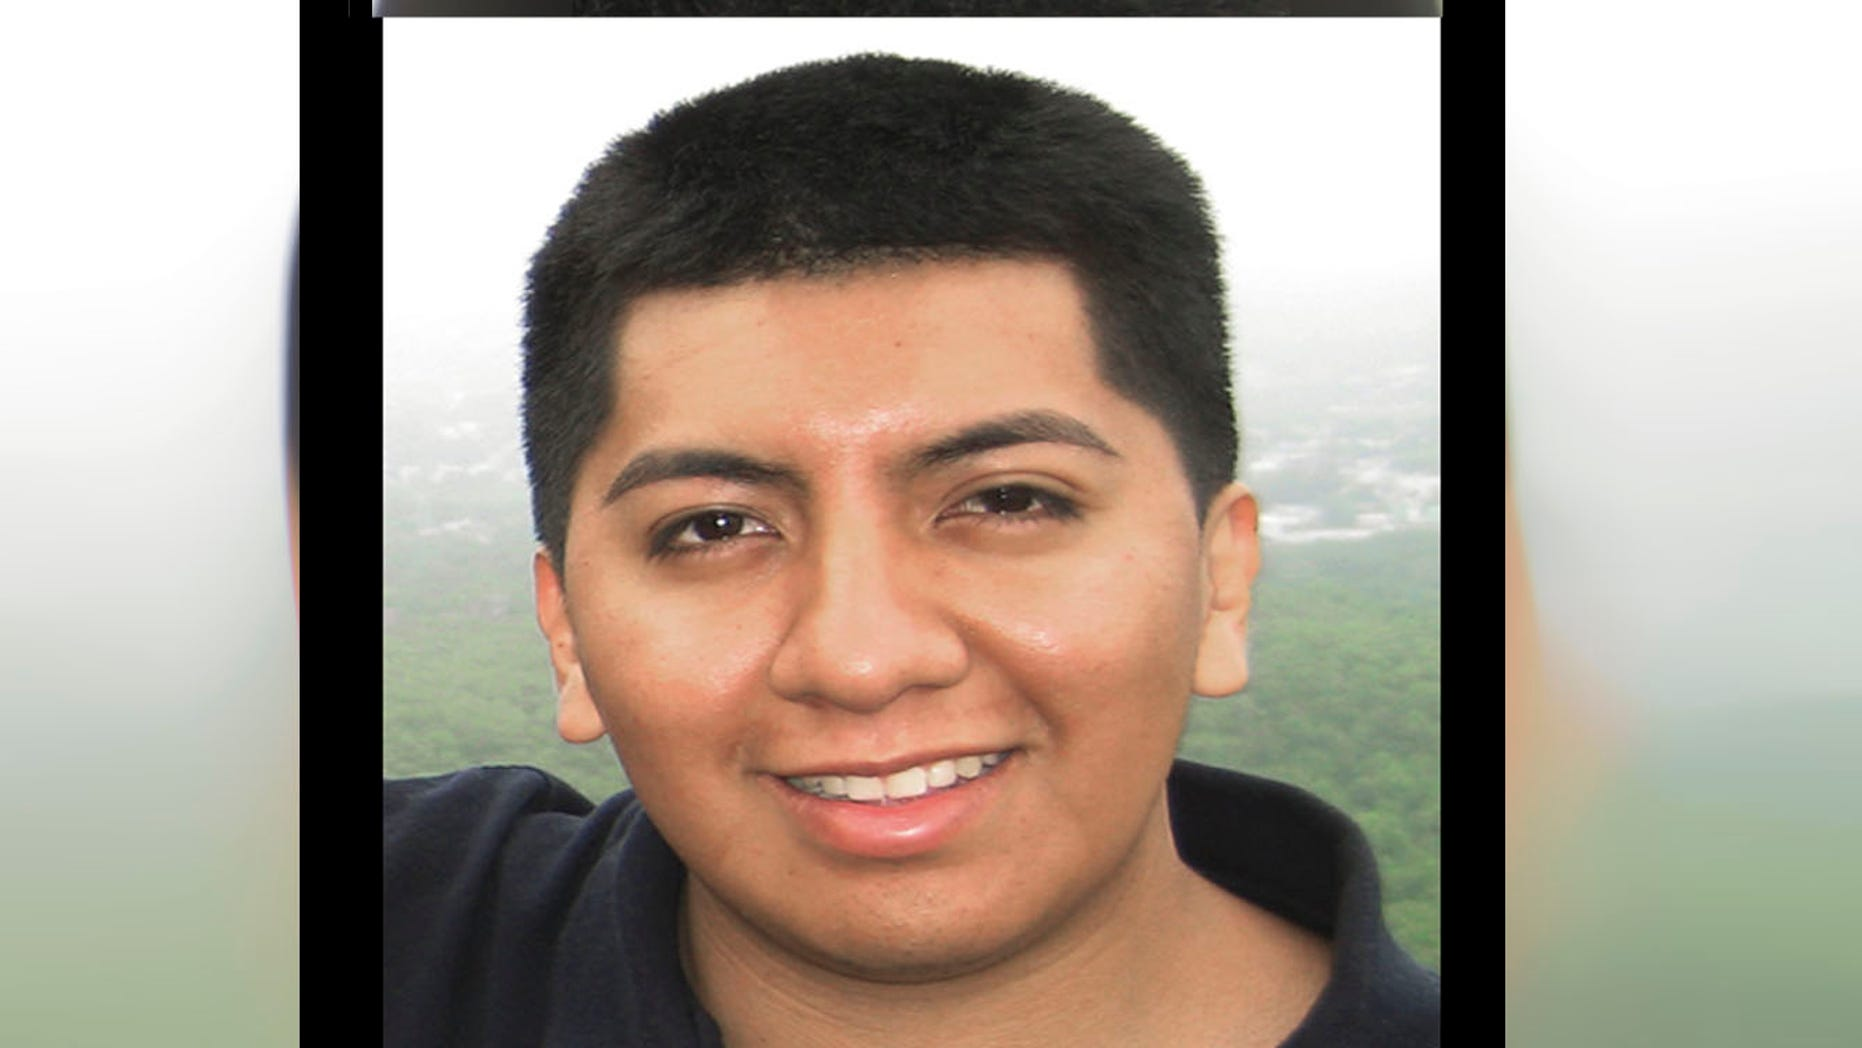 This June 2010 photo provided by Mariano Cardoso shows Cardoso at Hubbard Park in Merriden, Conn. Cardoso, a Mexican college student fought a deportation order, learned Tuesday, April 26, 2011 that he will be allowed to stay in the U.S. for now. Sen. Richard Blumenthal said the Department of Homeland Security called his office to inform him that a stay of removal for Cardoso had been granted.  (AP Photo/Mariano Cardoso)  NO SALES